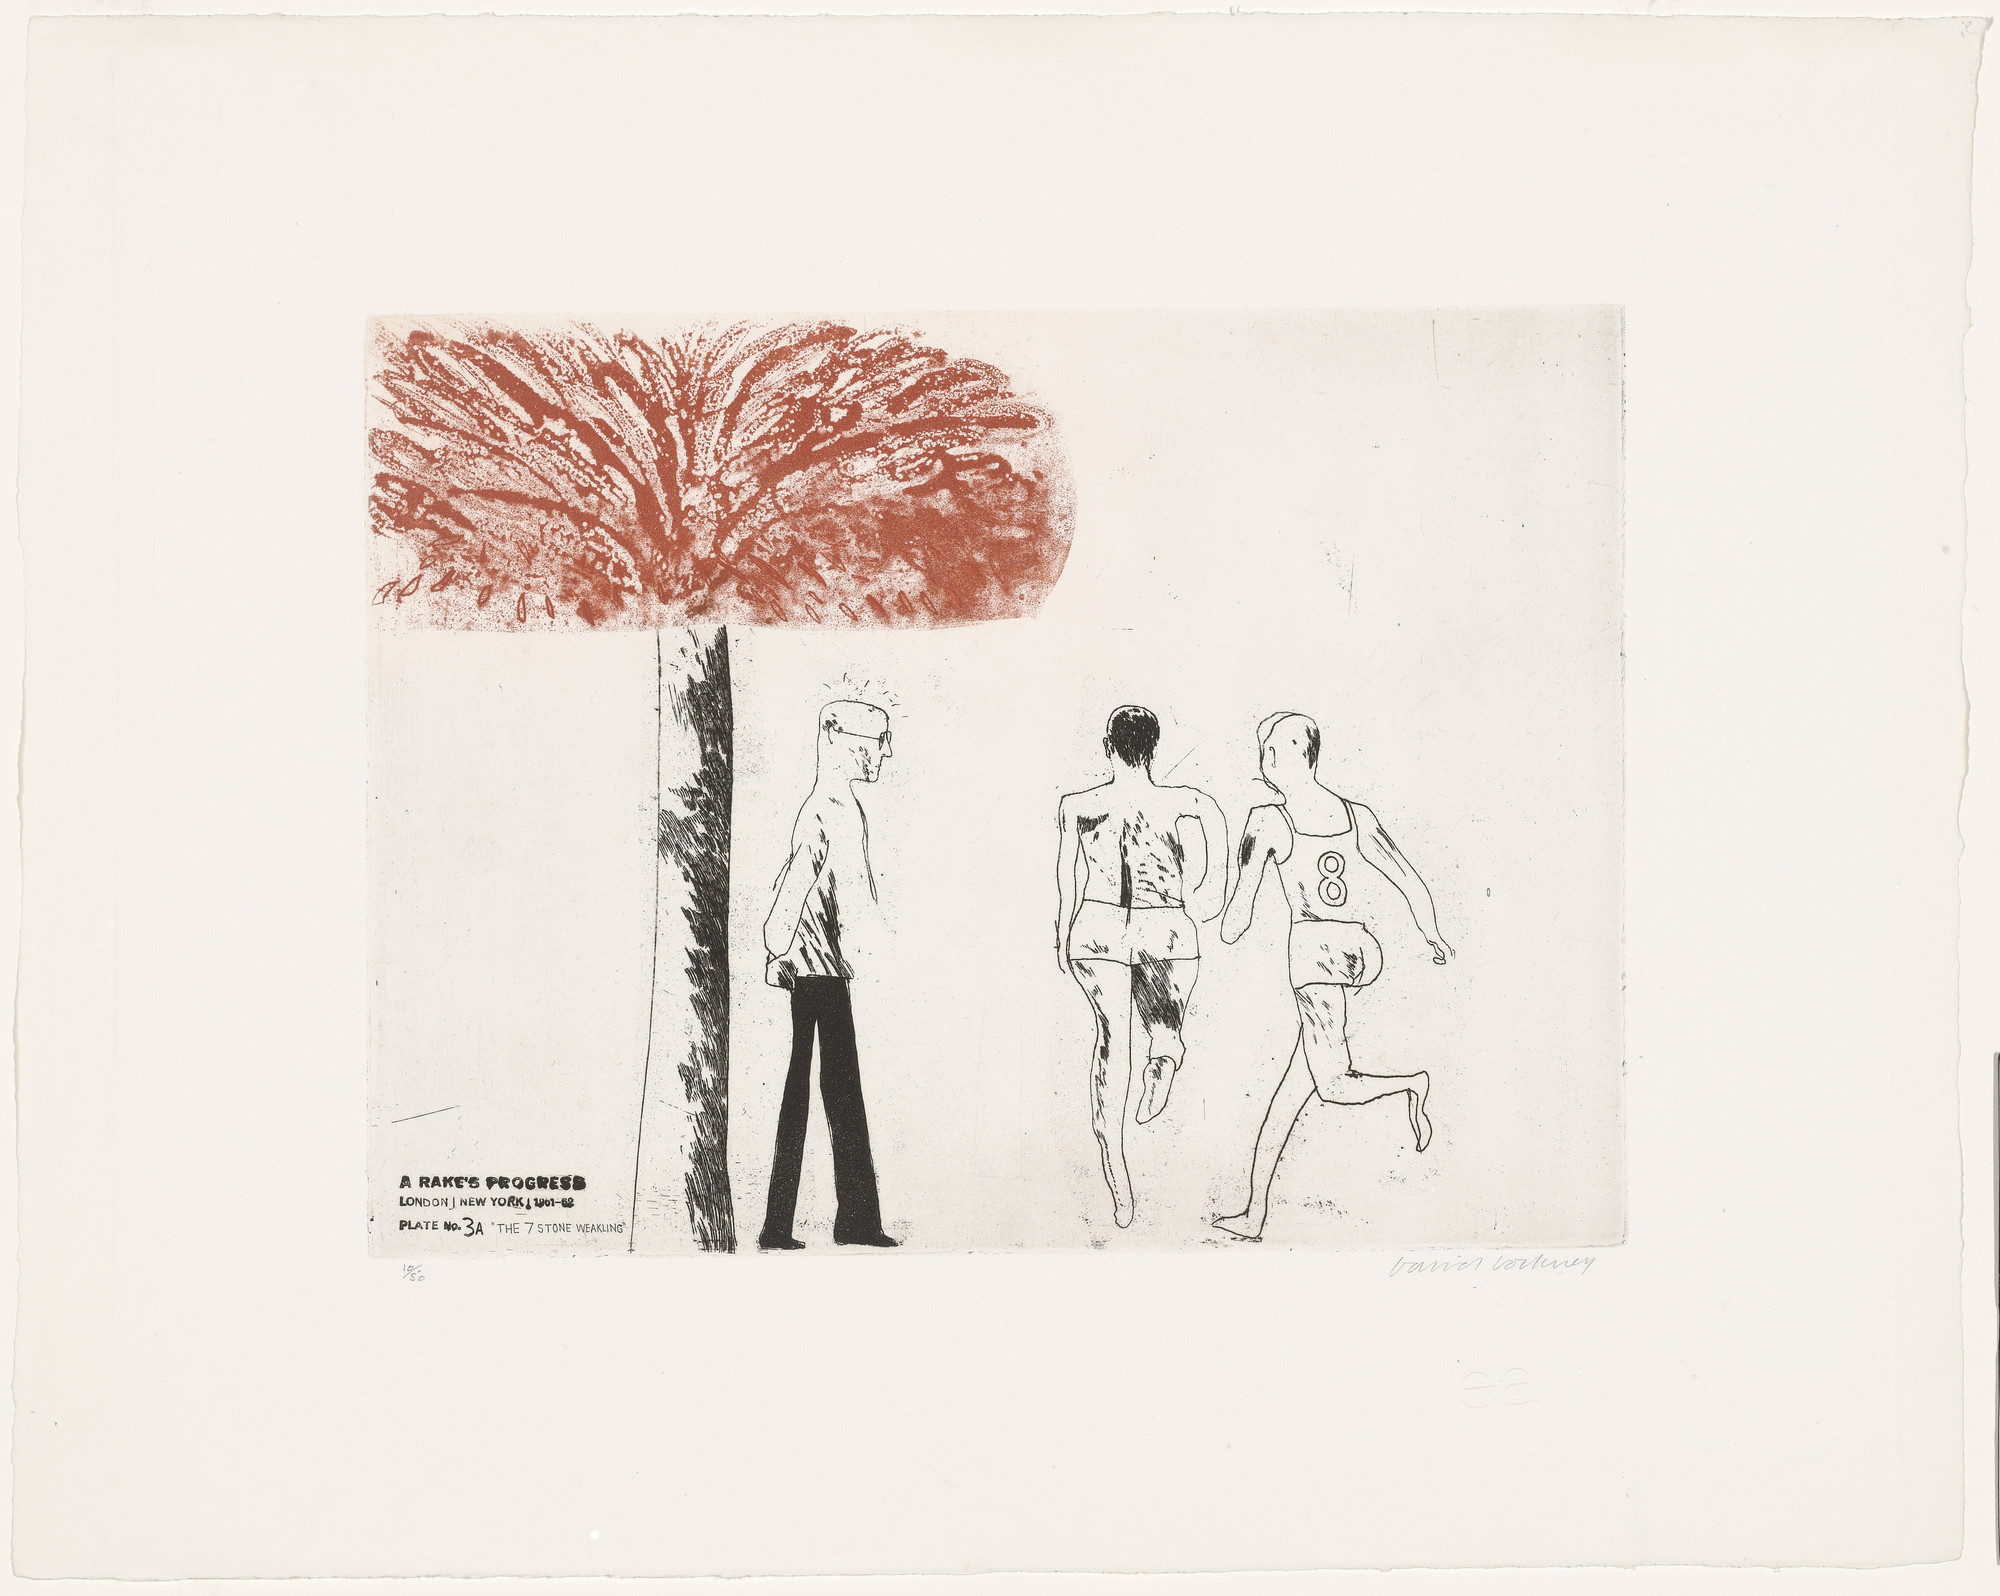 David Hockney. The Seven Stone Weakling (plate 3a) from A Rake's Progress. 1961–62, published 1963